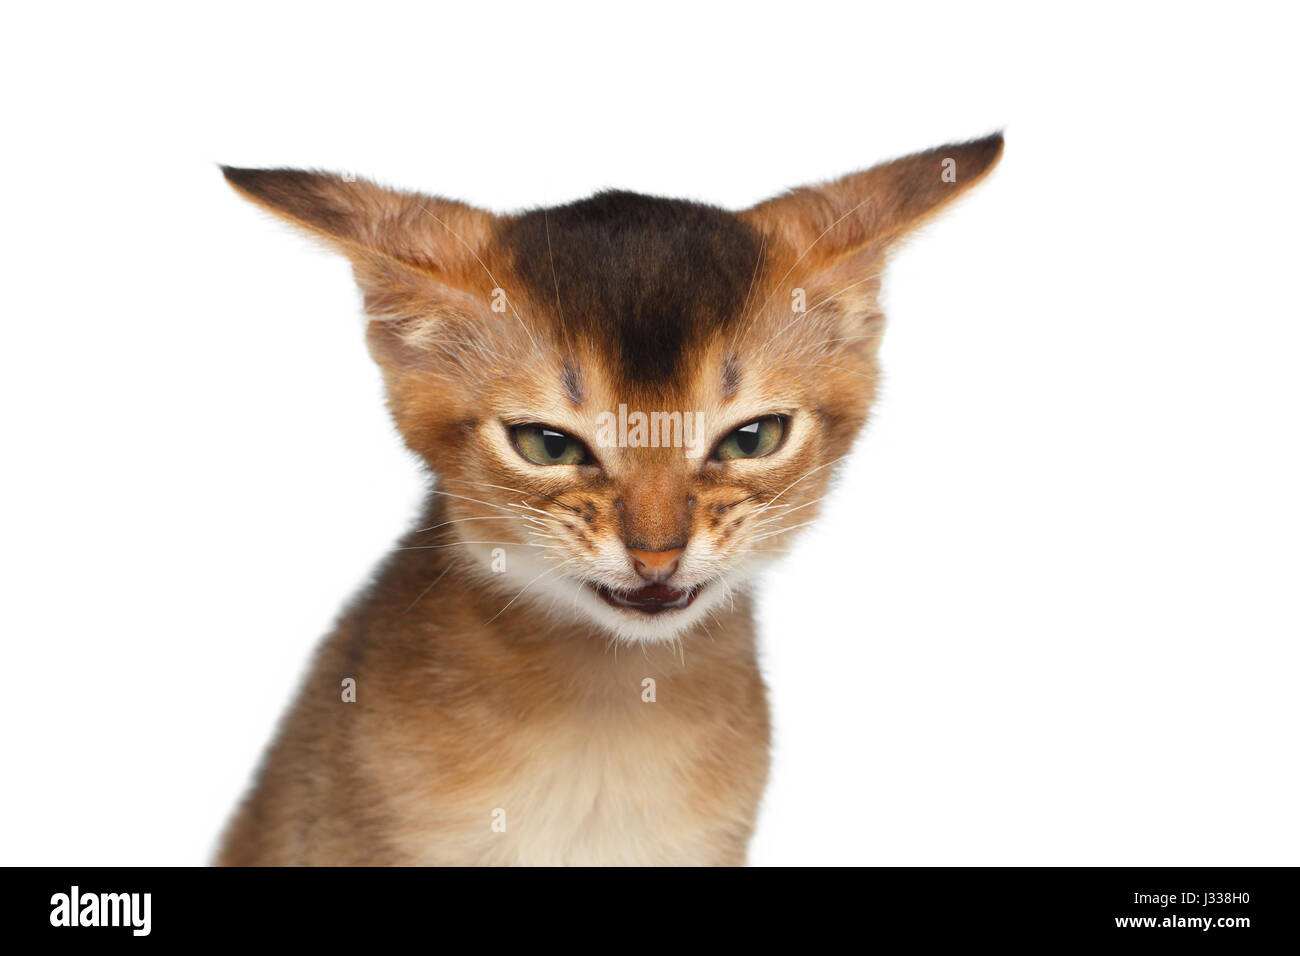 Portrait of Angry Kitten on Isolated White Background - Stock Image